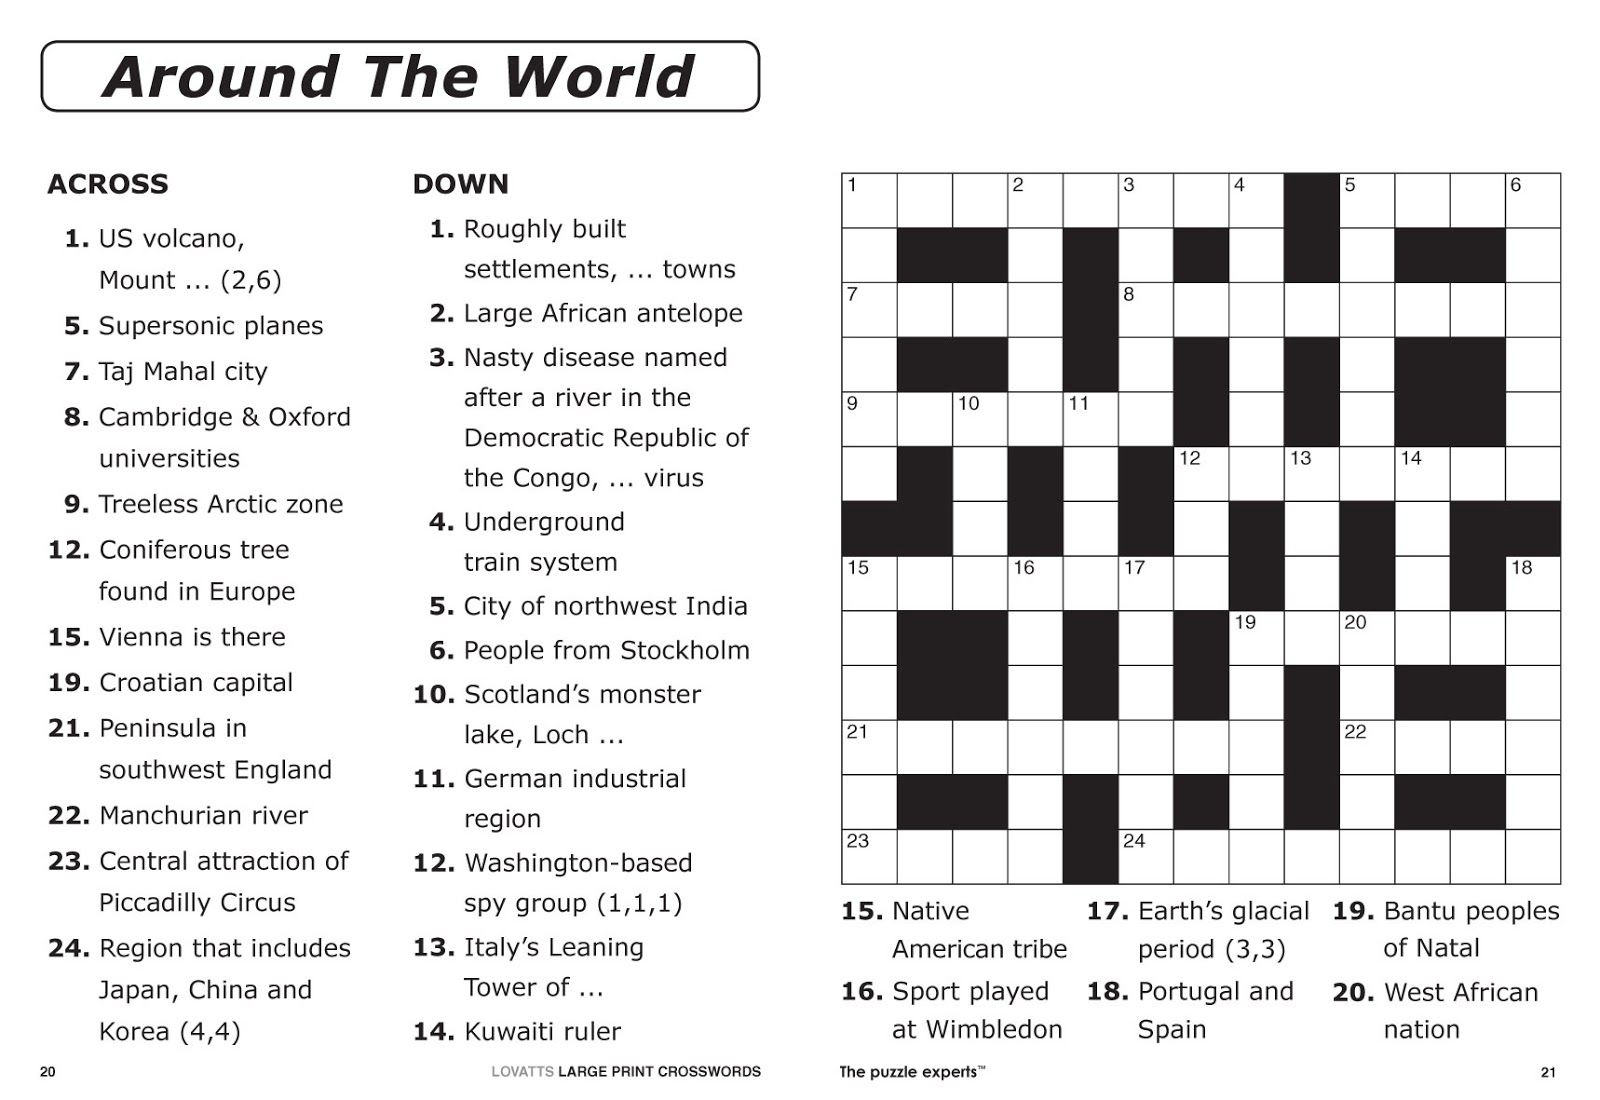 Free Printable Large Print Crossword Puzzles | M3U8 - Simple Crossword Puzzles Printable Free